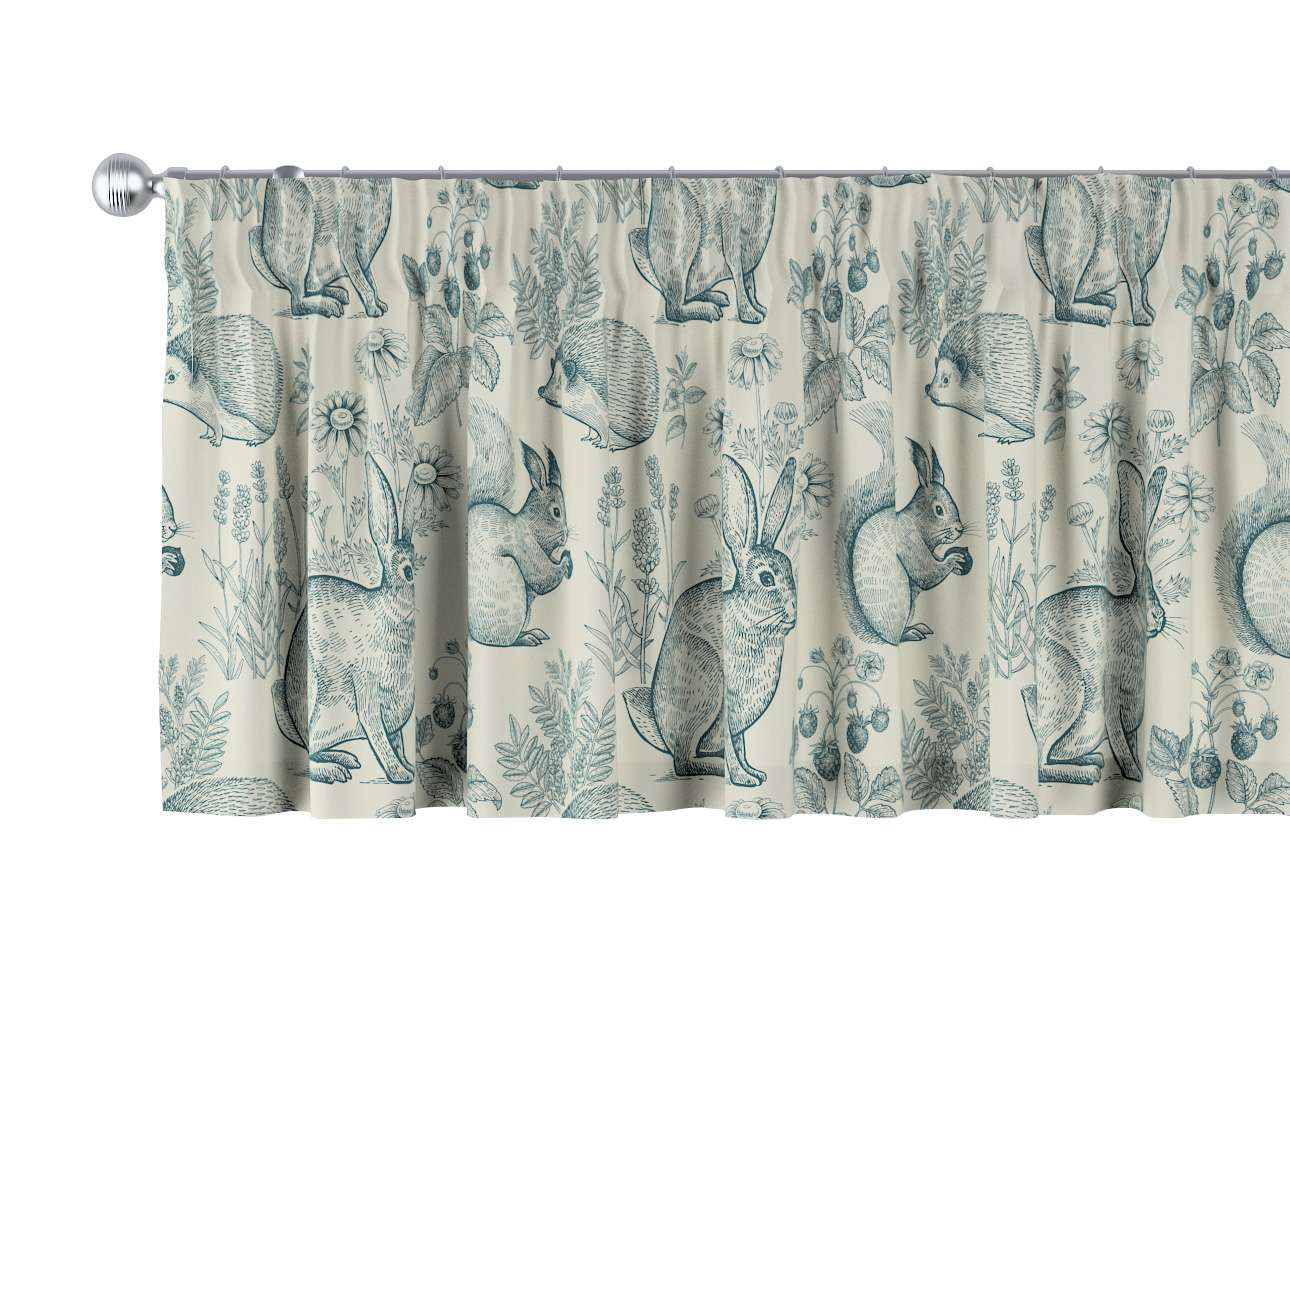 Lambrequin with gathering tape in collection Magic Collection, fabric: 500-04